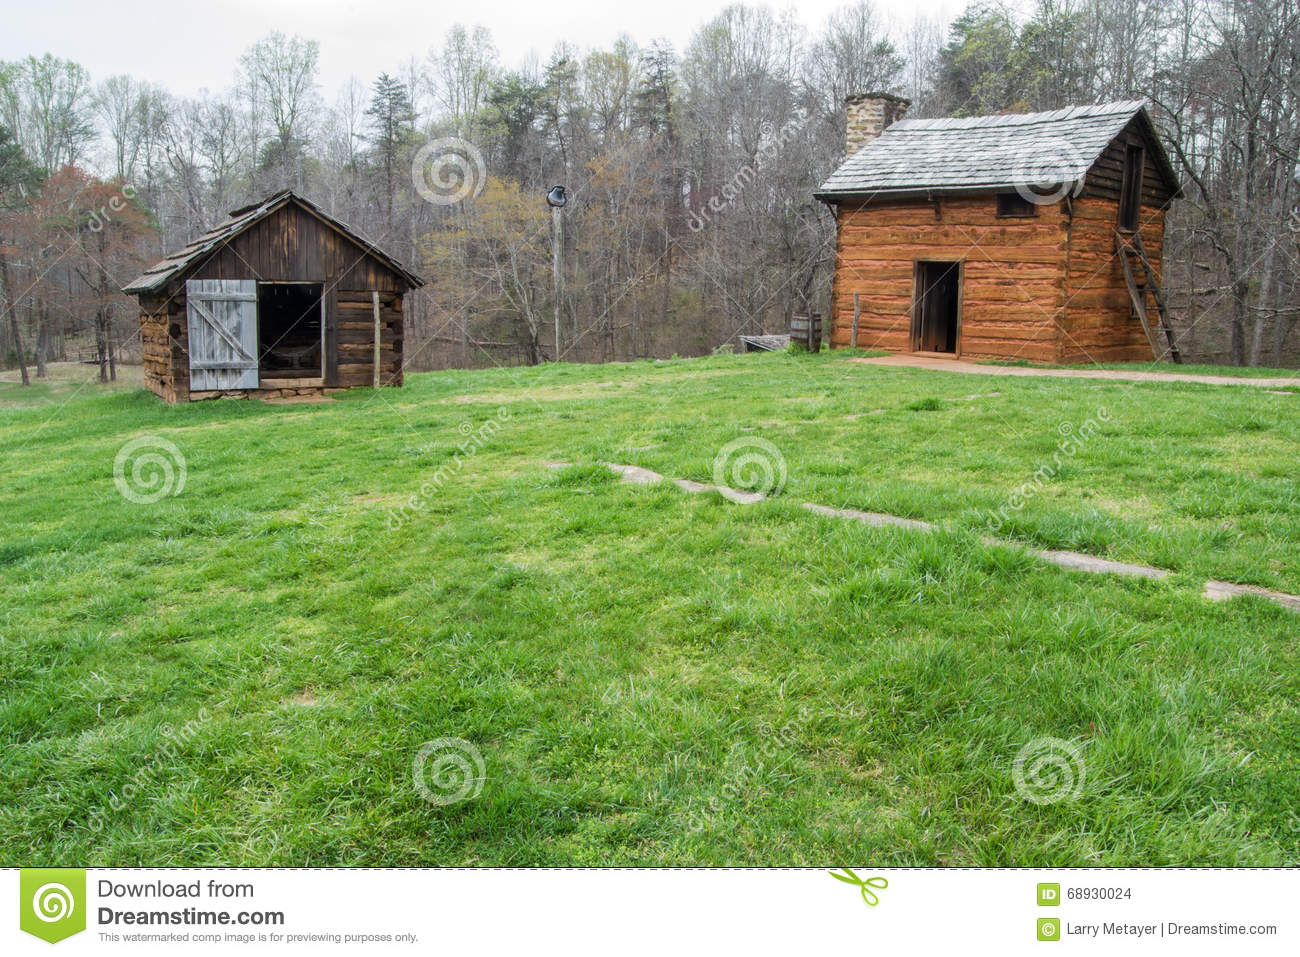 Buildings Located on the Grounds of Booker T. Washington National Monument